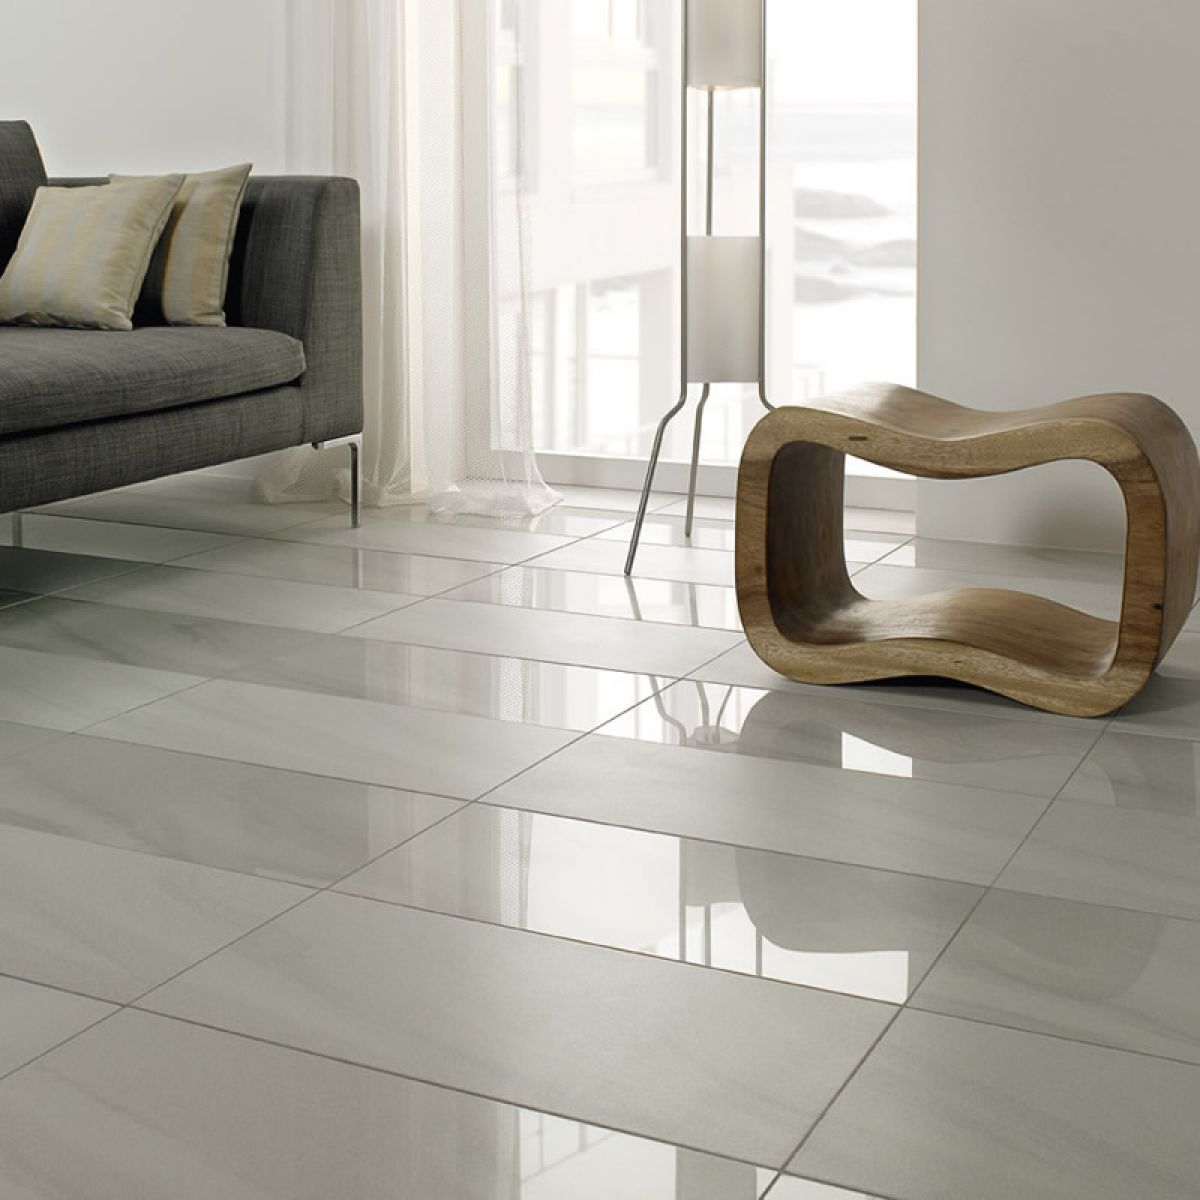 Villeroy boch landscape polished tile 2095 30 x 60cm uk bathrooms - Parquet grand passage leroy merlin ...